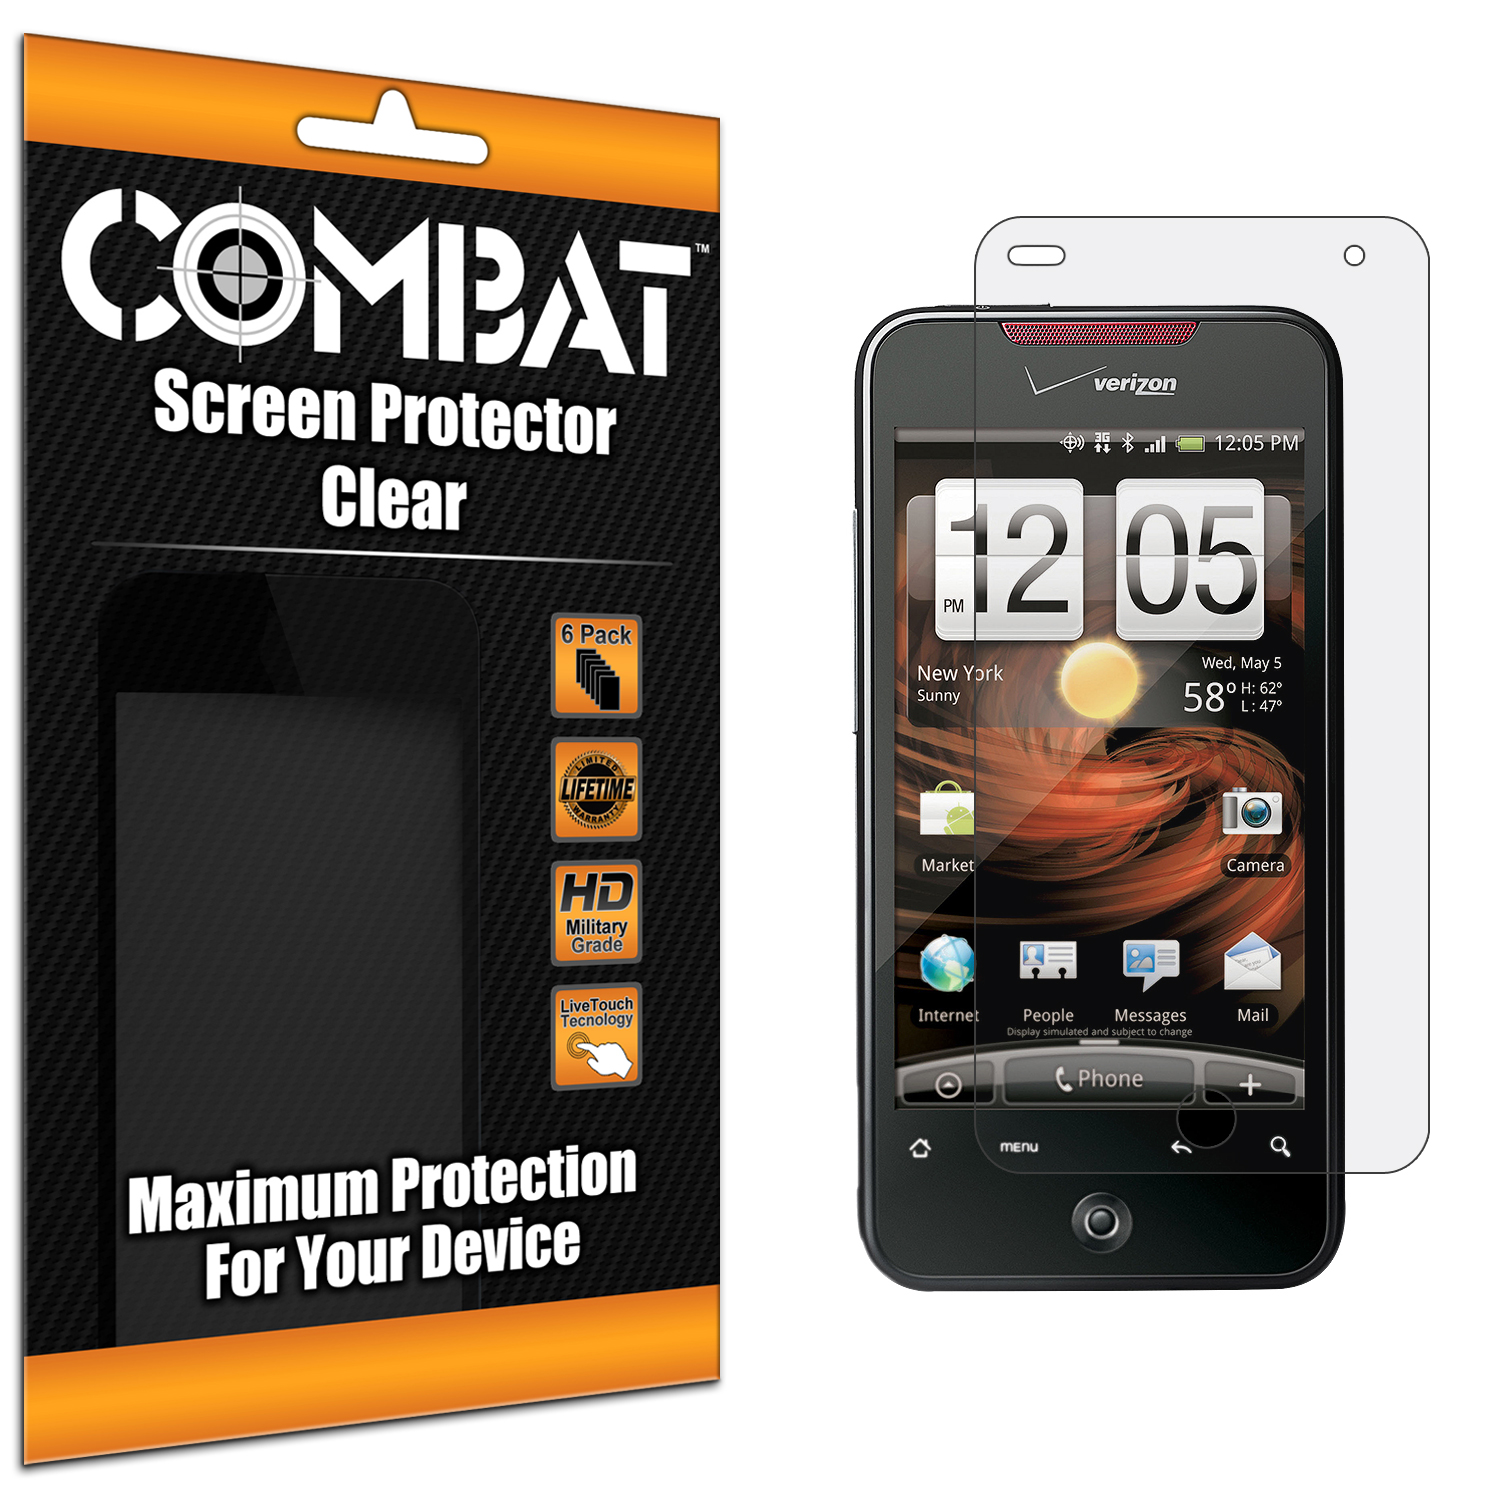 HTC Droid Incredible 6300 Combat 6 Pack HD Clear Screen Protector